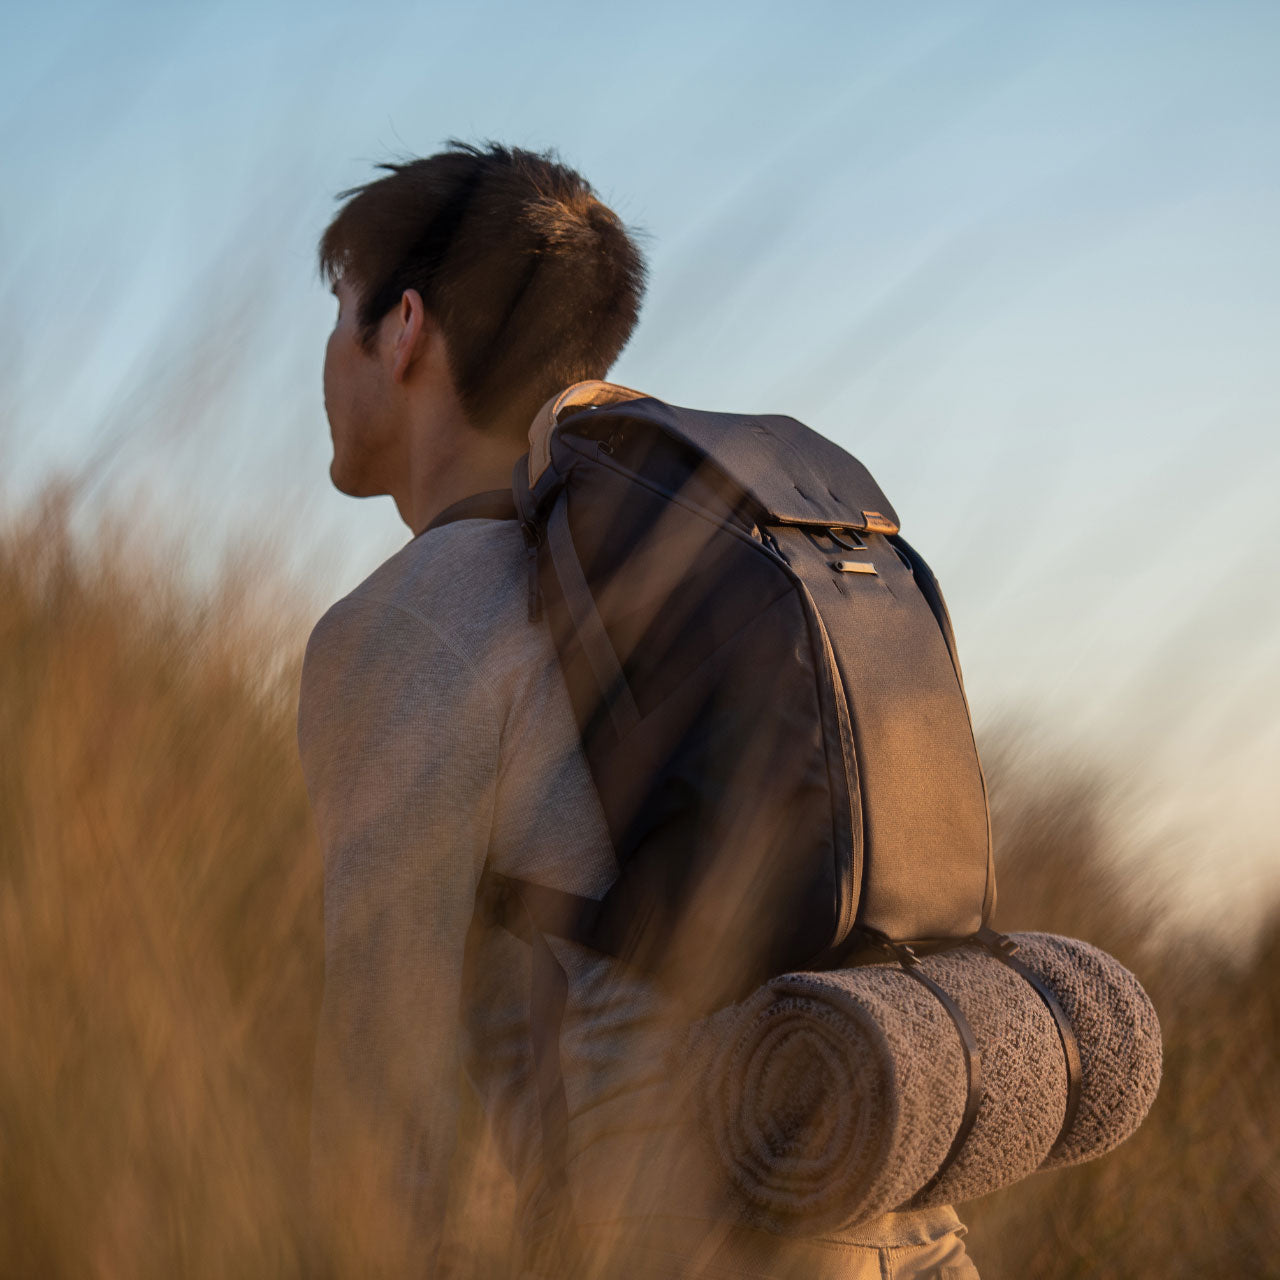 Man with Everyday Packpack in field